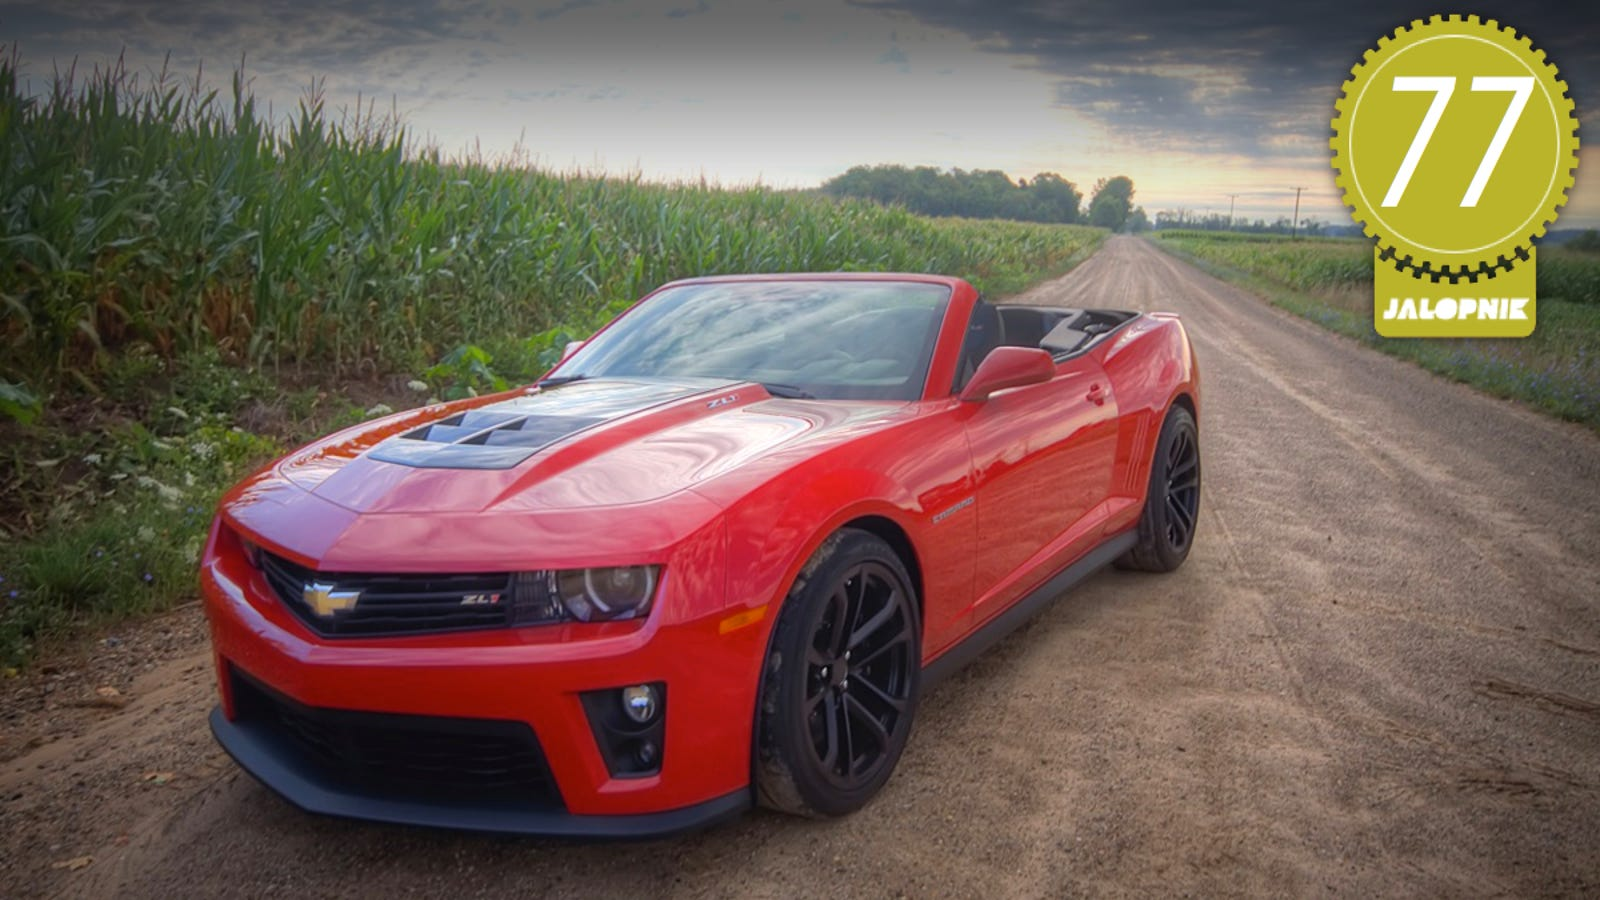 chevrolet camaro zl1 convertible the jalopnik review. Black Bedroom Furniture Sets. Home Design Ideas